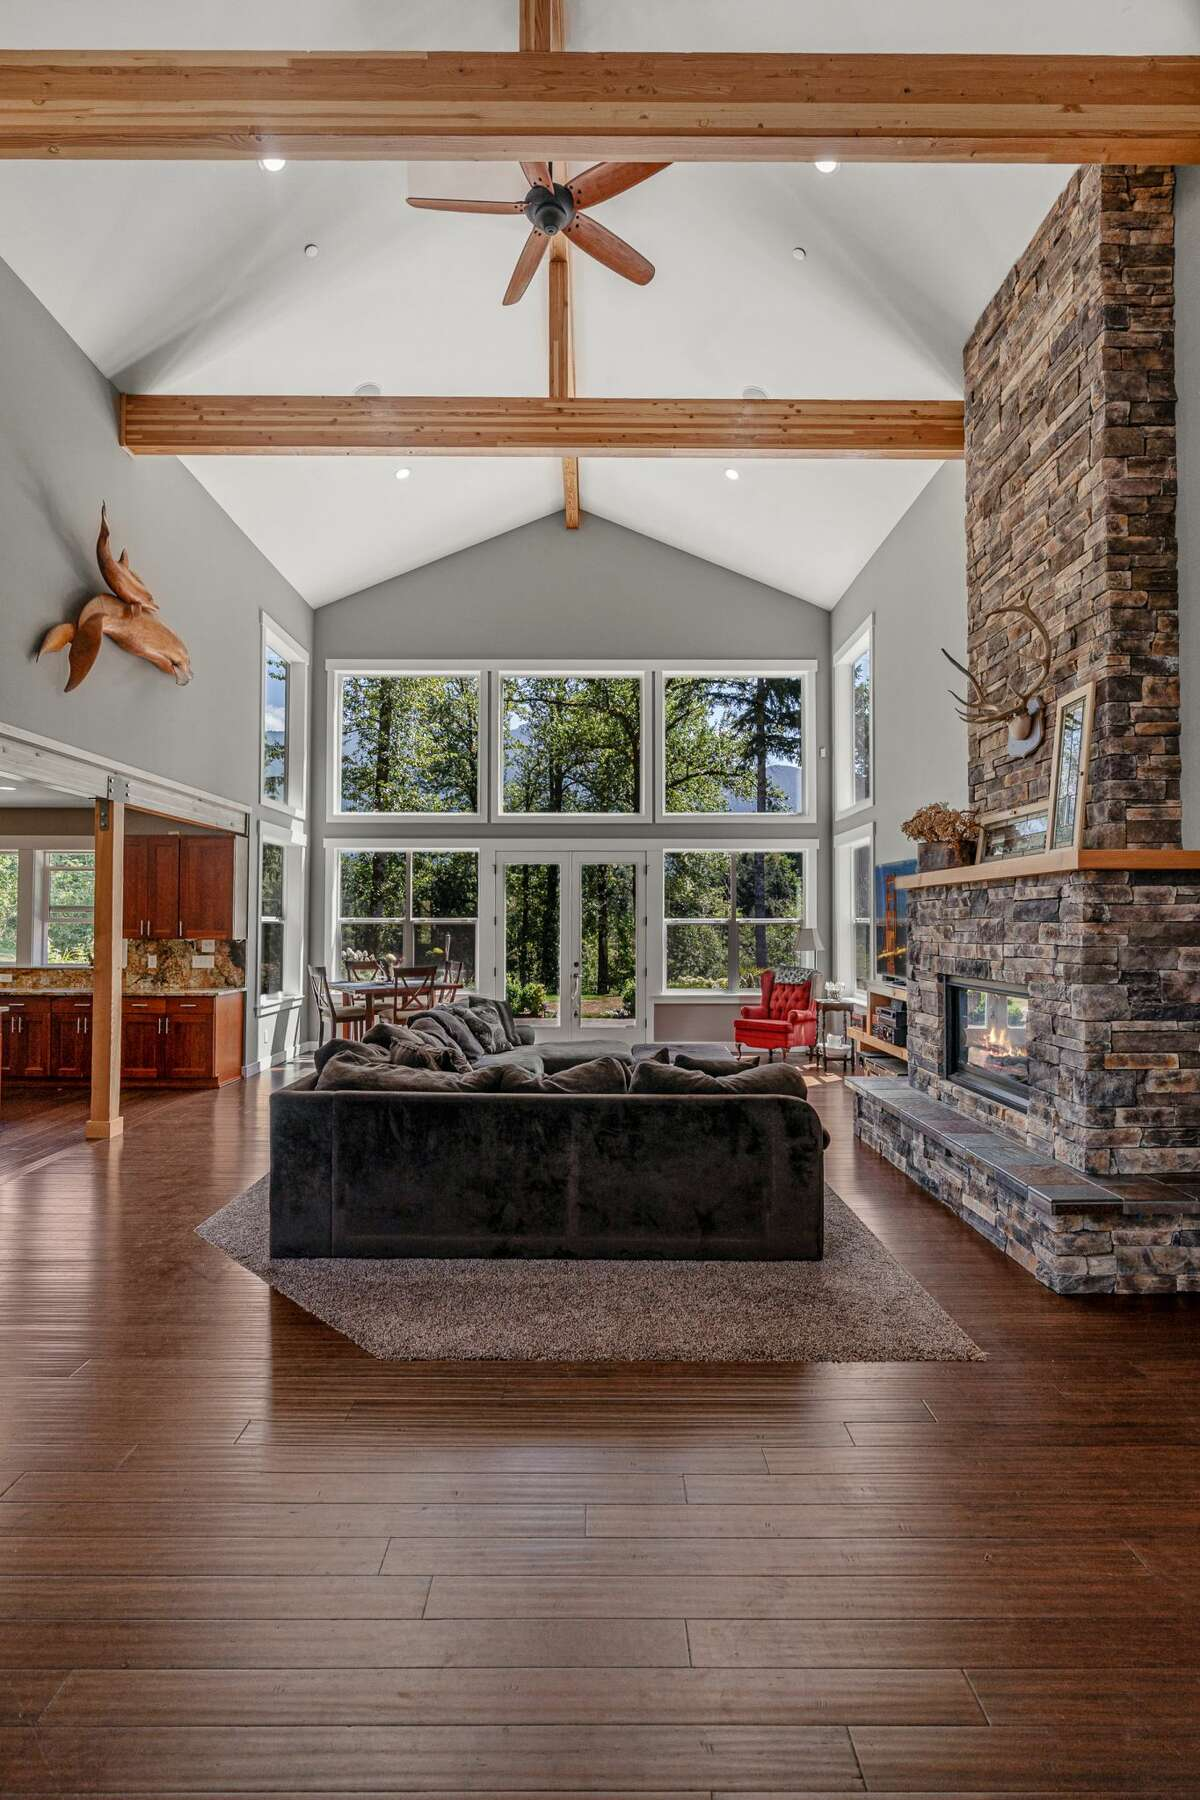 The cabin/castle/resort feel of the soaring ceiling and ornate stone hearth is enhanced by the wall of windows framing the sylvan setting.